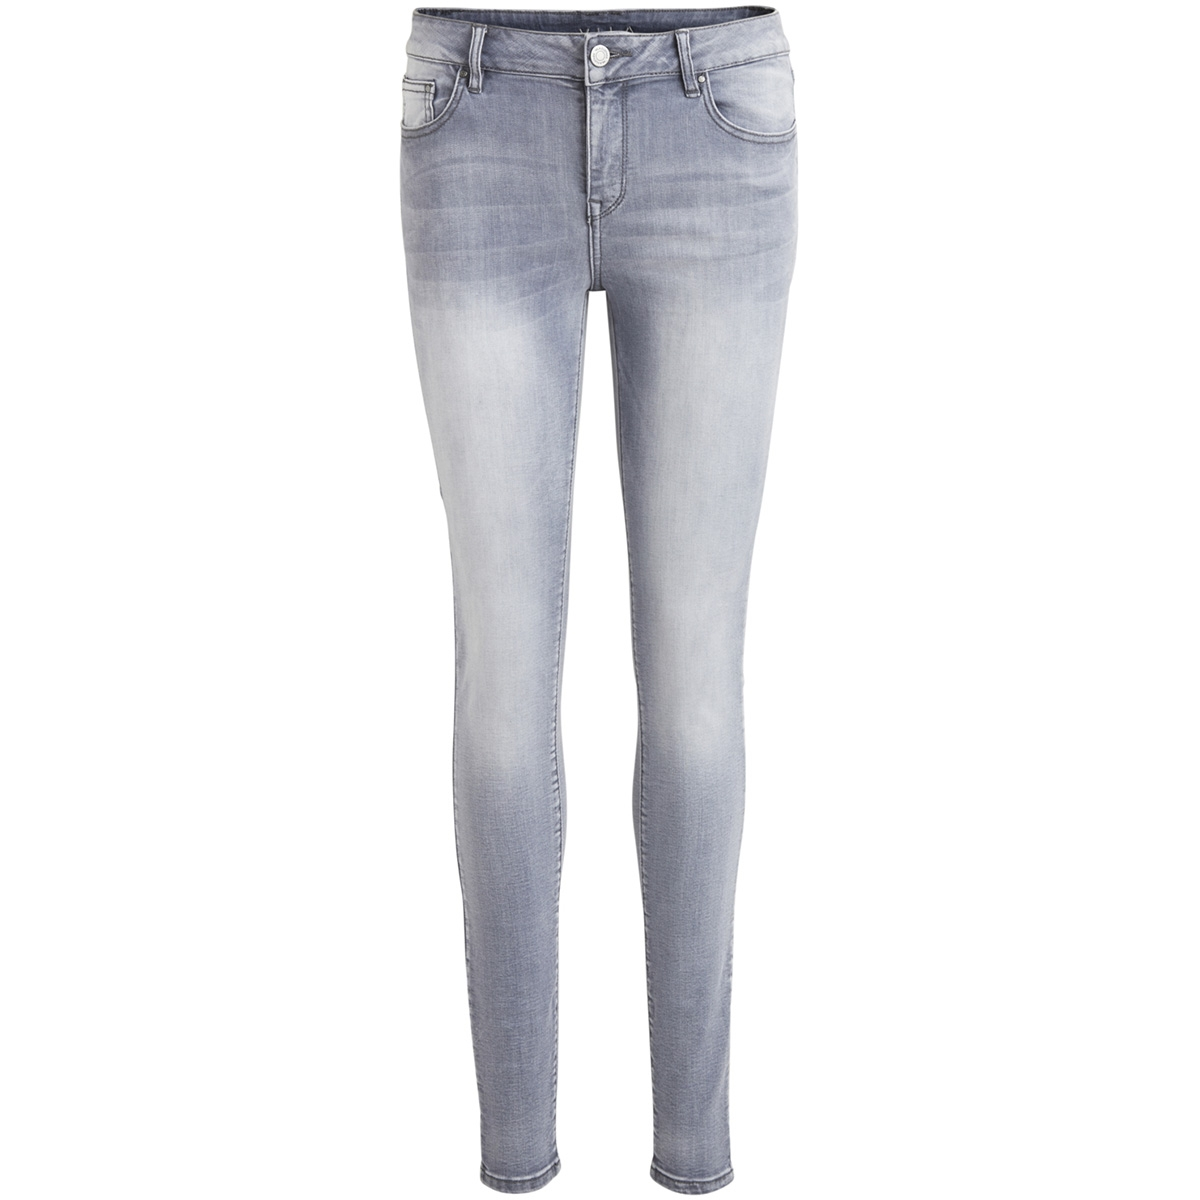 vicommit rw 5p hk0101 grey-noos 14045760 vila jeans grey denim